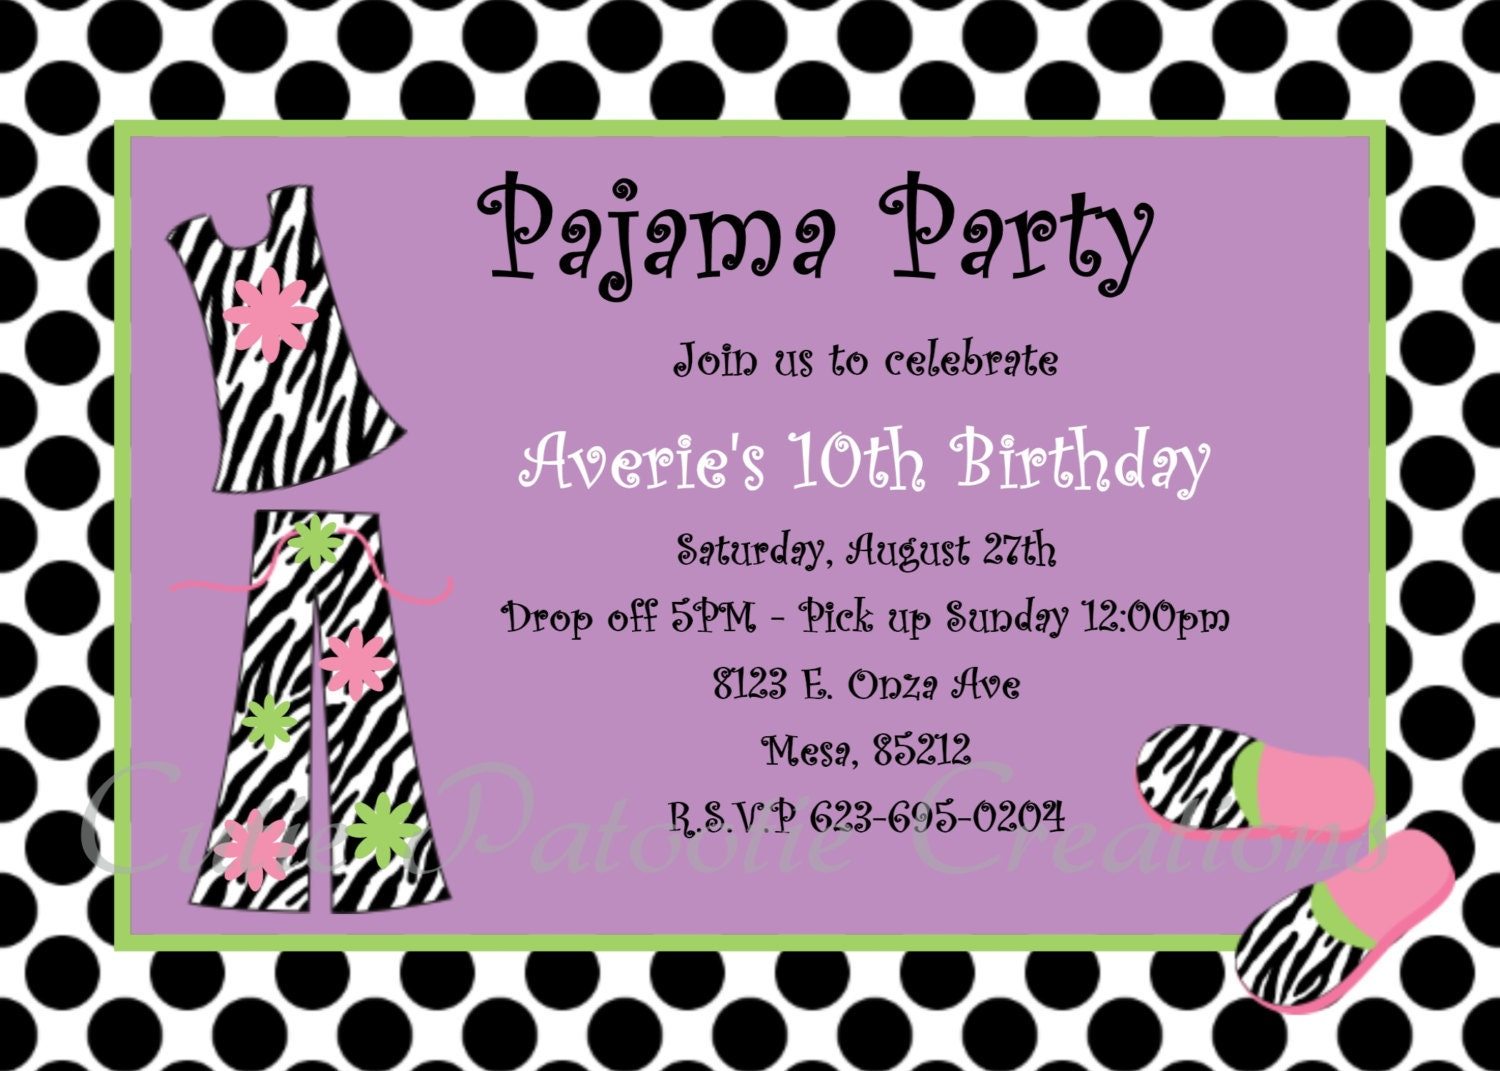 Pajama Party Birthday Invitation Printable or Printed – Pajama Party Invites